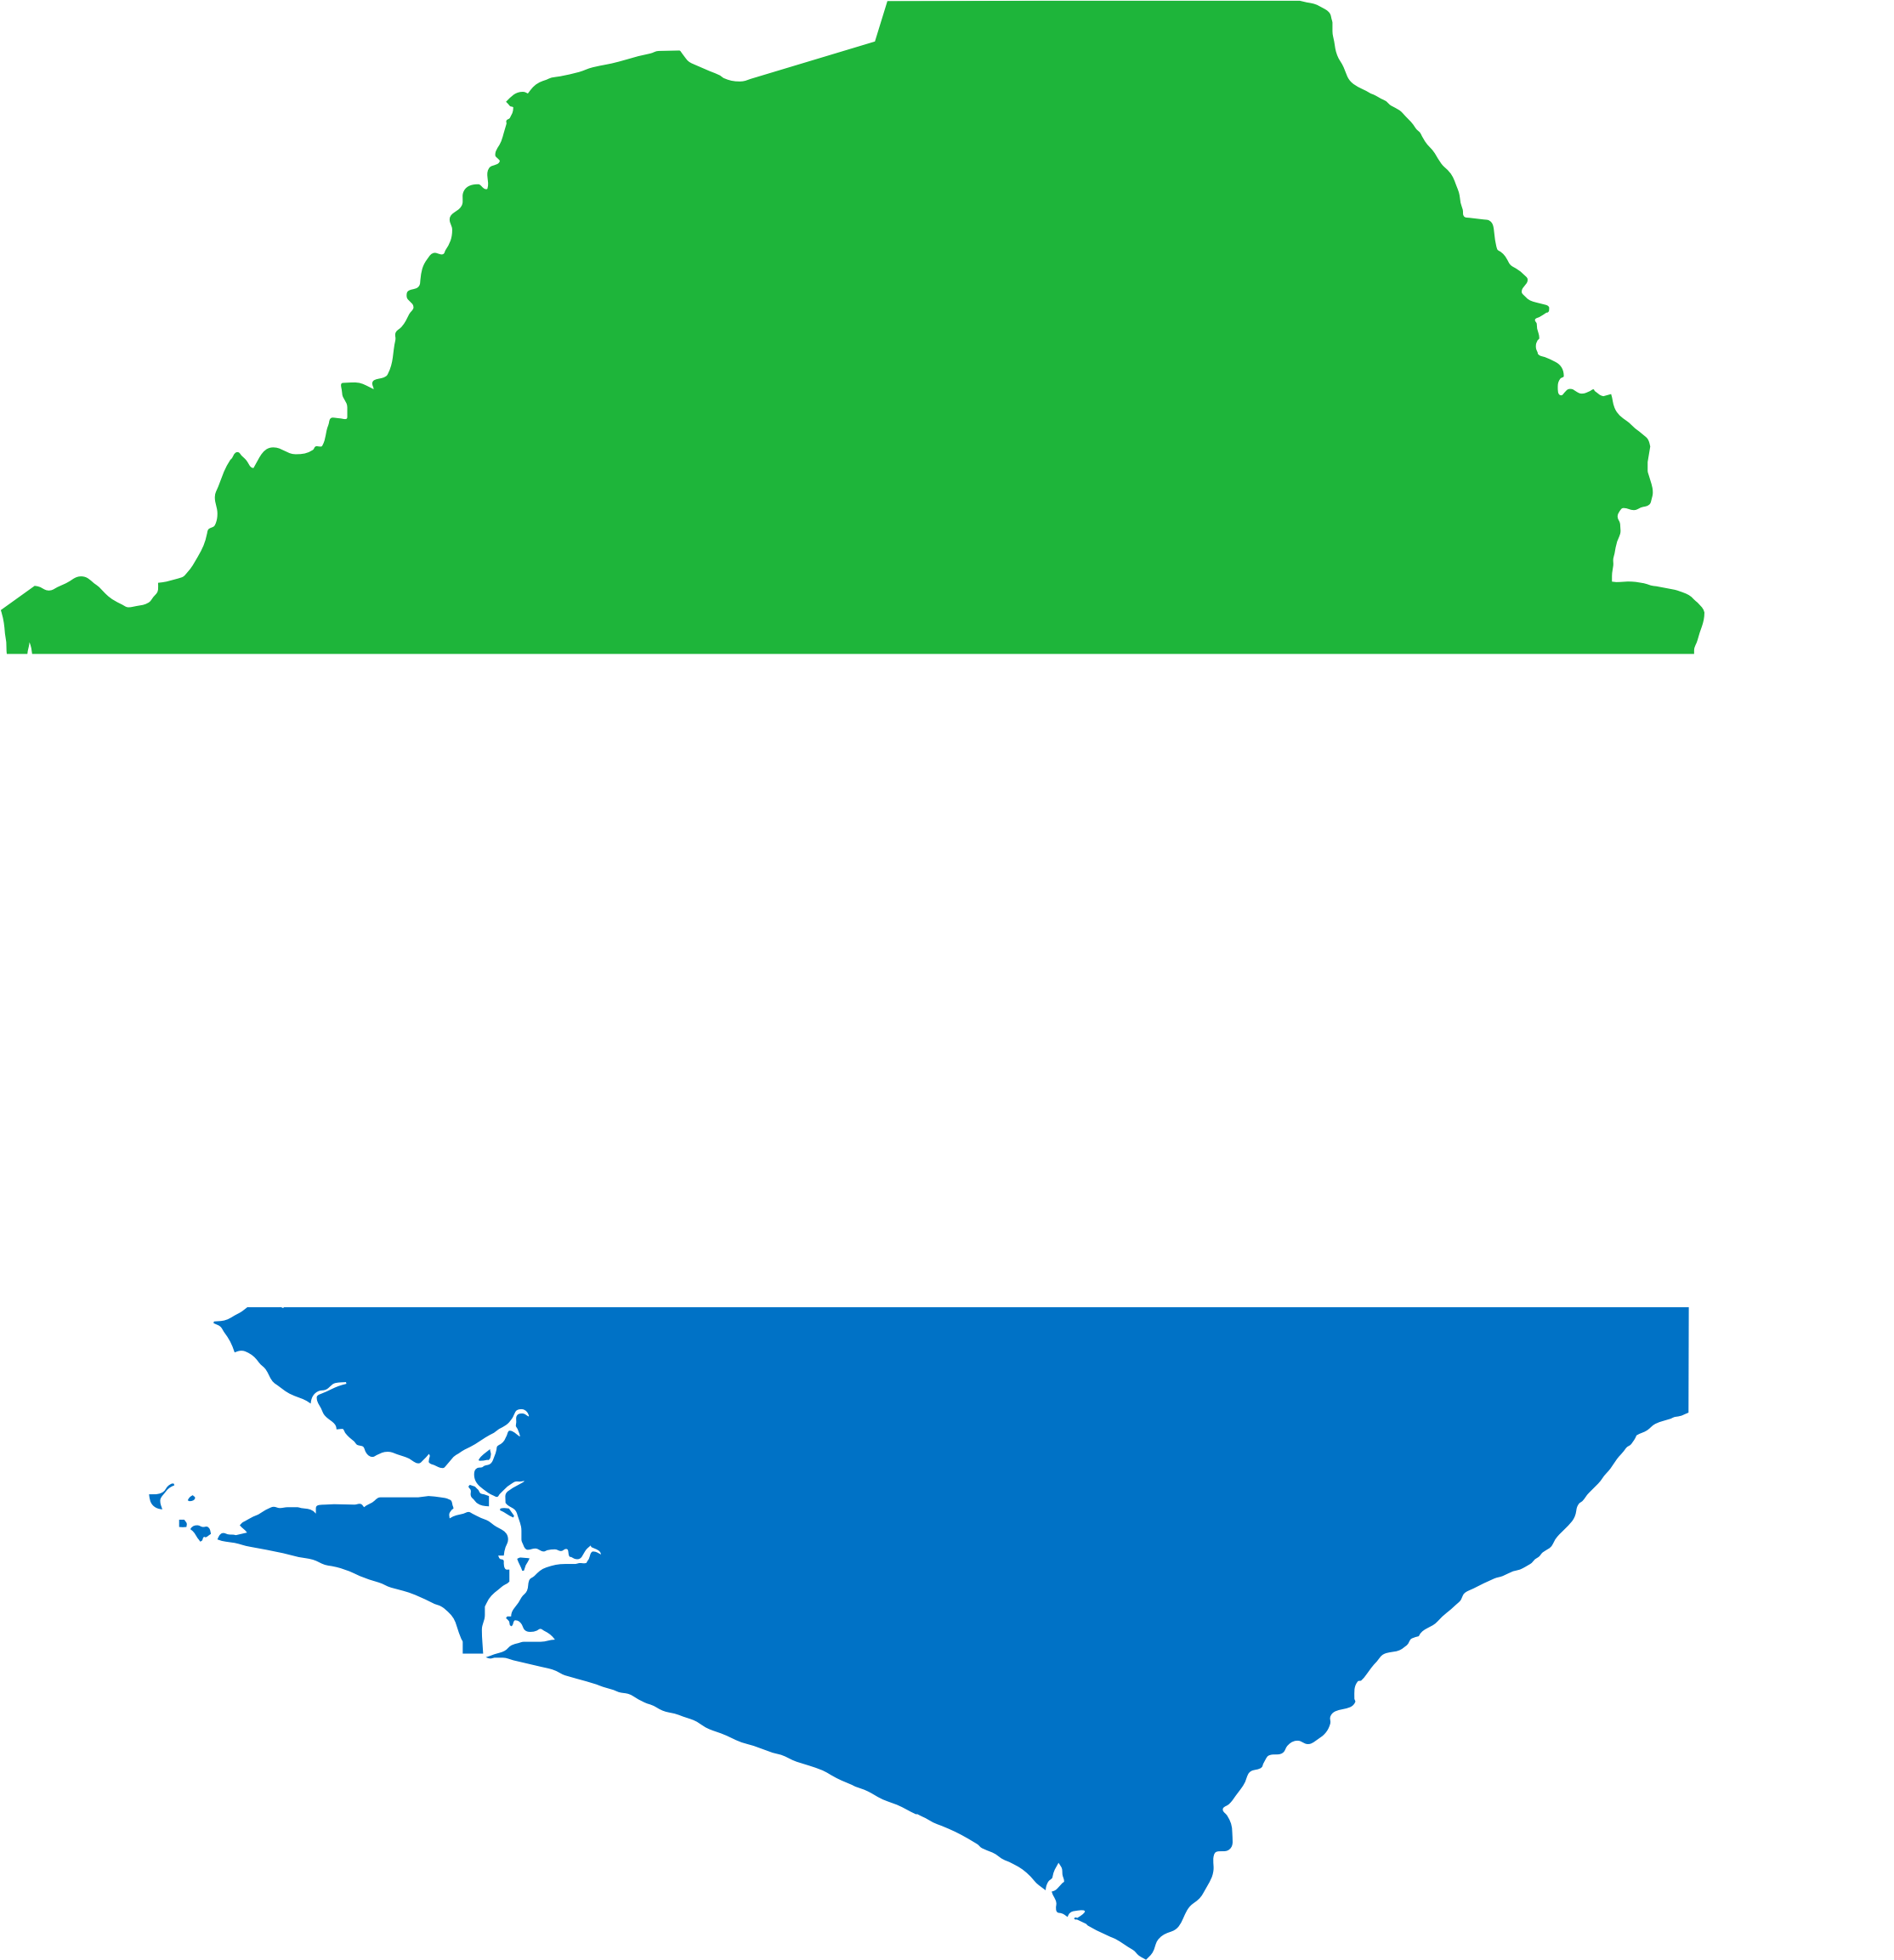 Sierra Leone Flag and Description